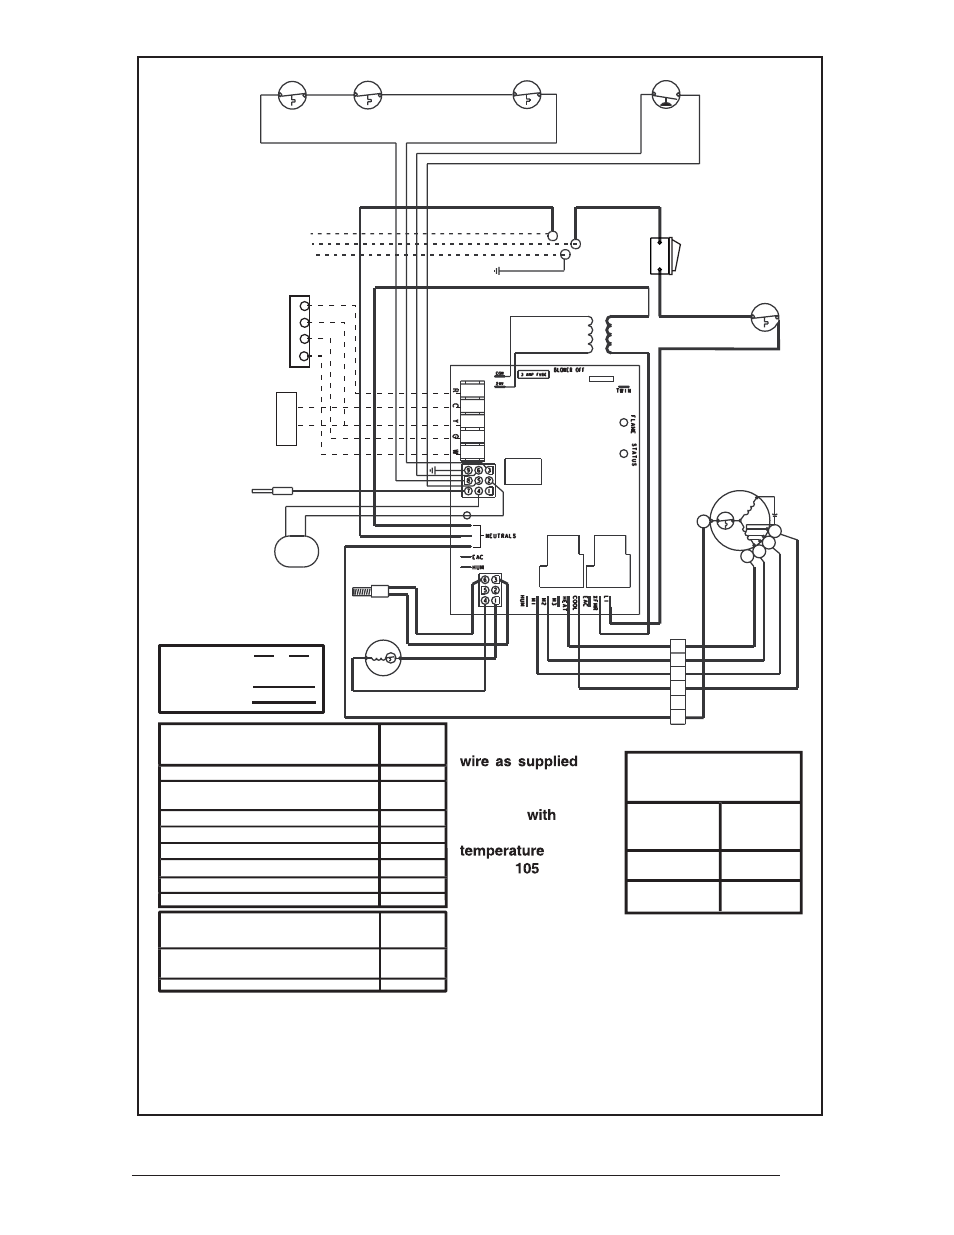 hight resolution of 33 figure 30 downflow furnace wiring diagram legend nordyne 33 figure 30 downflow furnace wiring